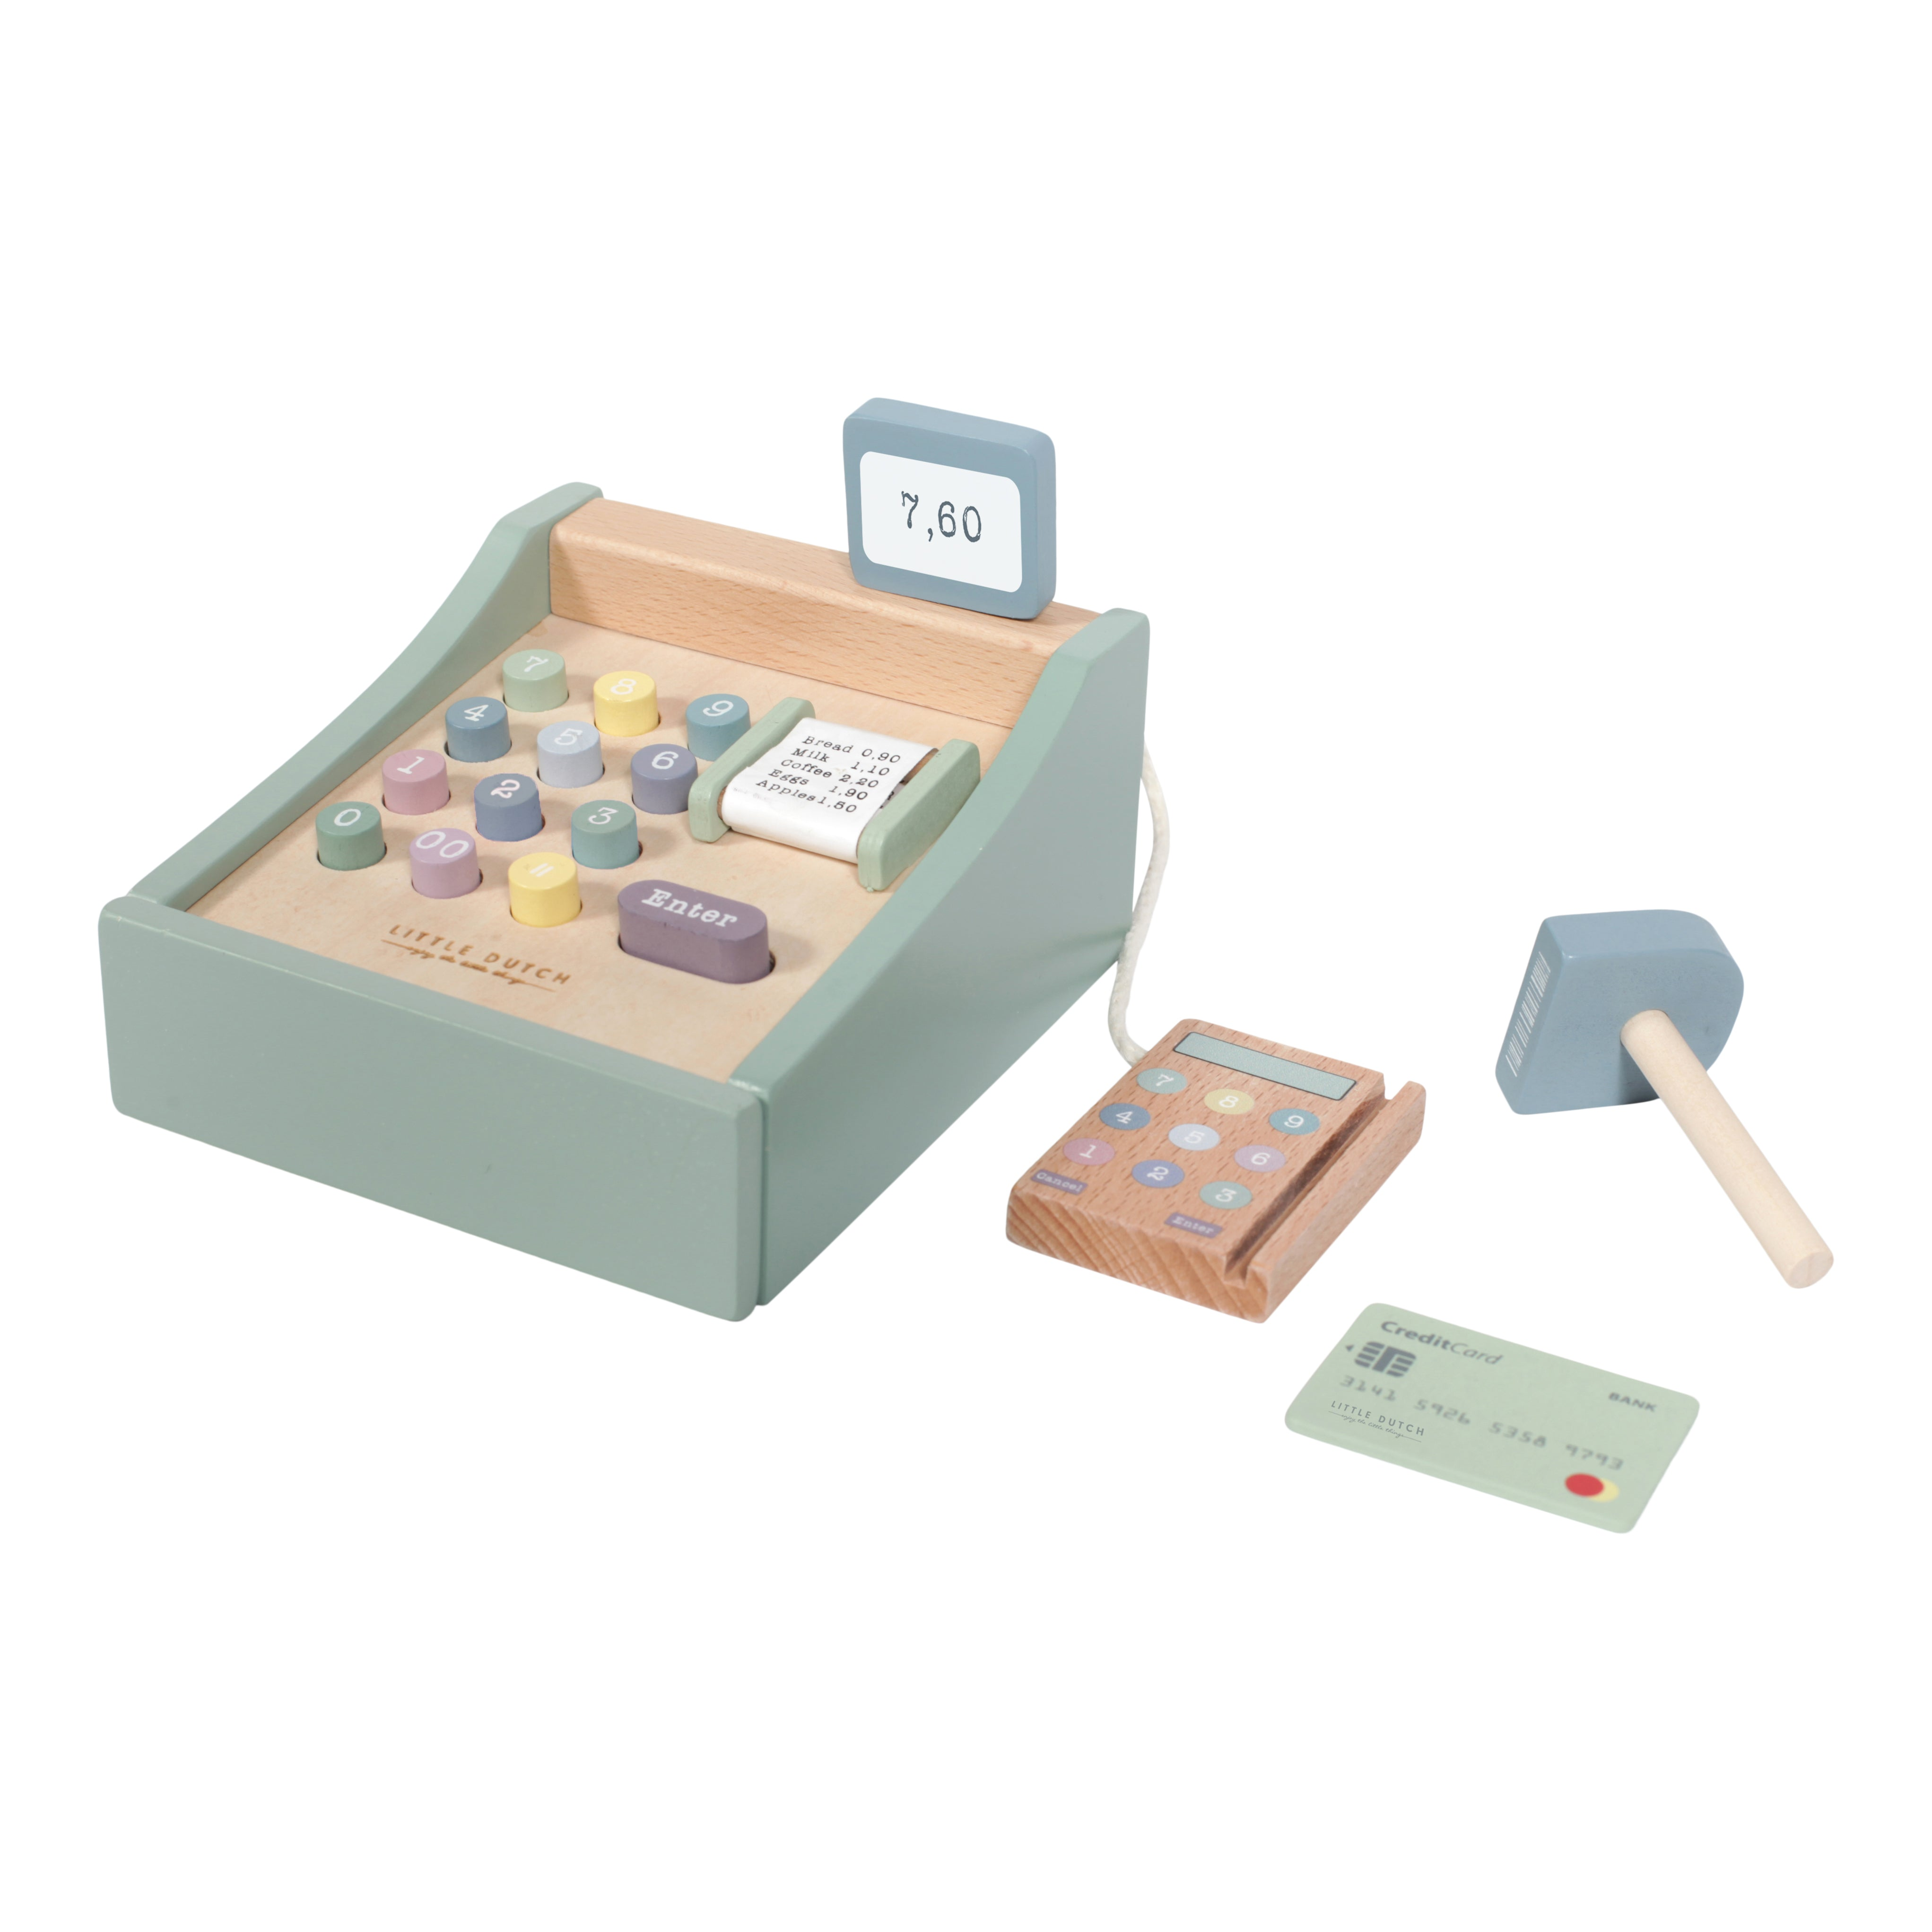 Wooden toy cash register with scanner - LD